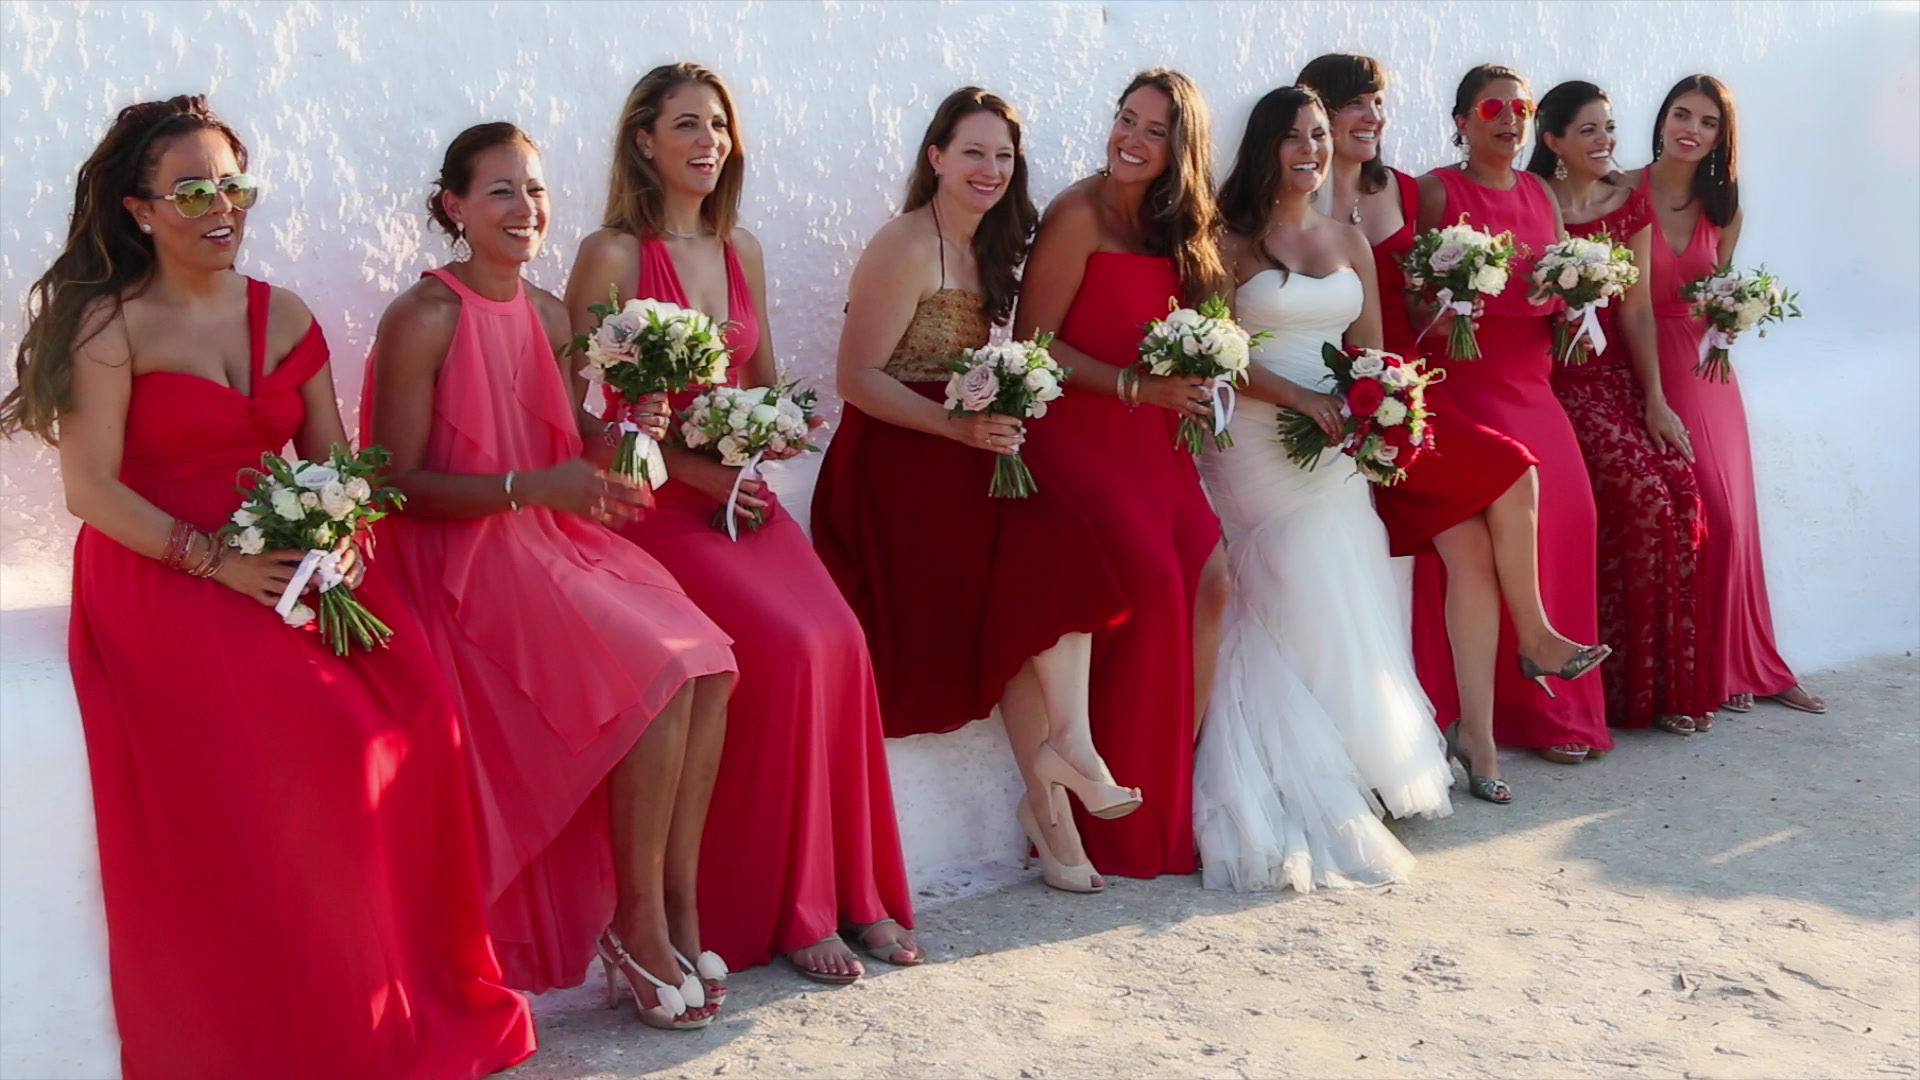 Wedding Videography - Bridesmaids